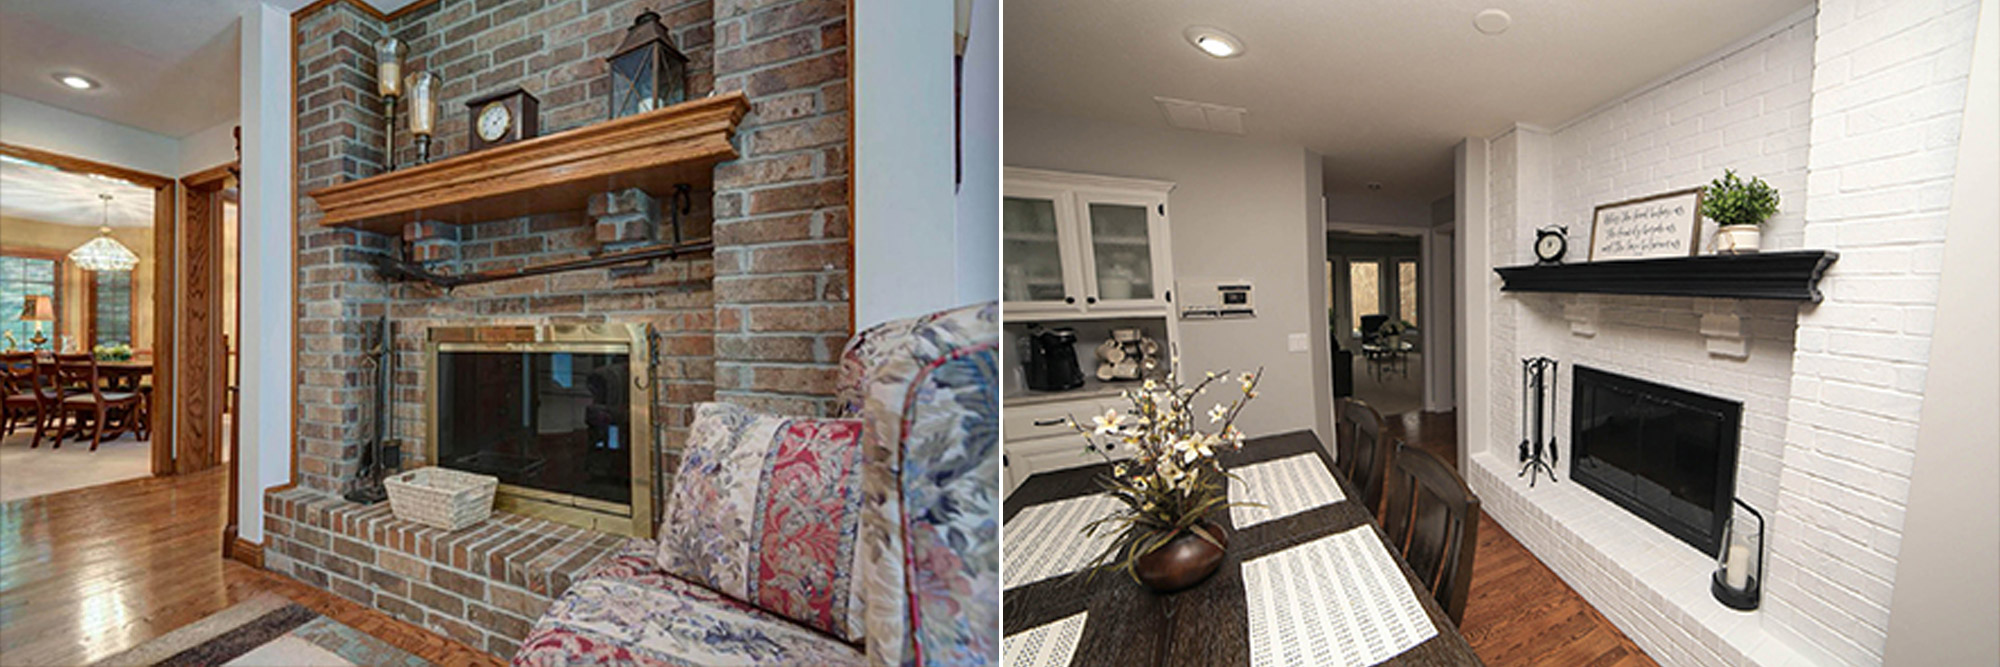 Brick Fireplace - Before & After